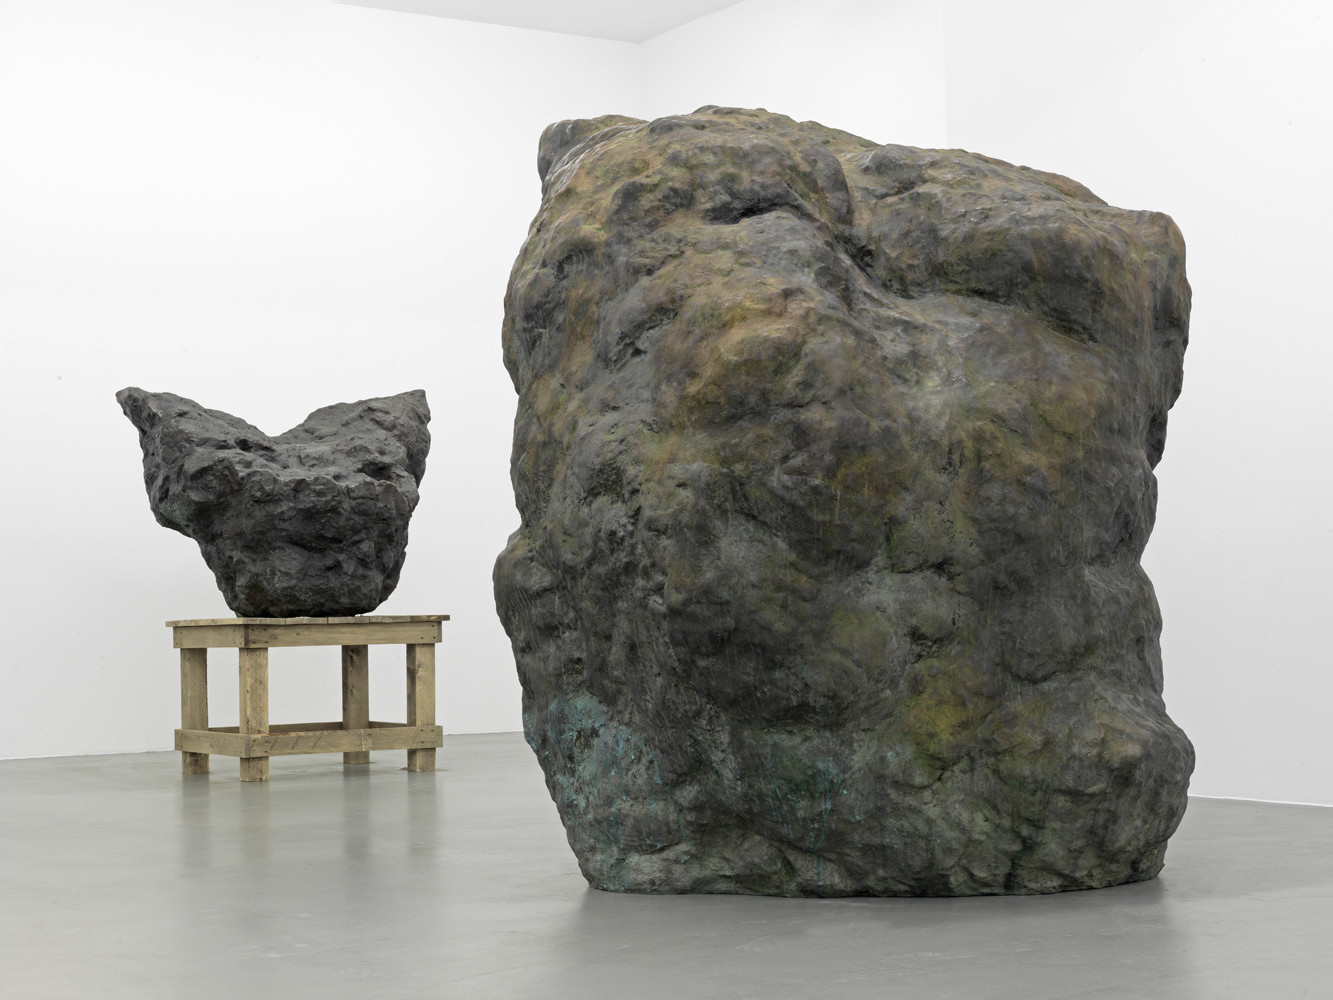 William Tucker, 'Sculpture', Installation view, Buchmann Galerie, 2013